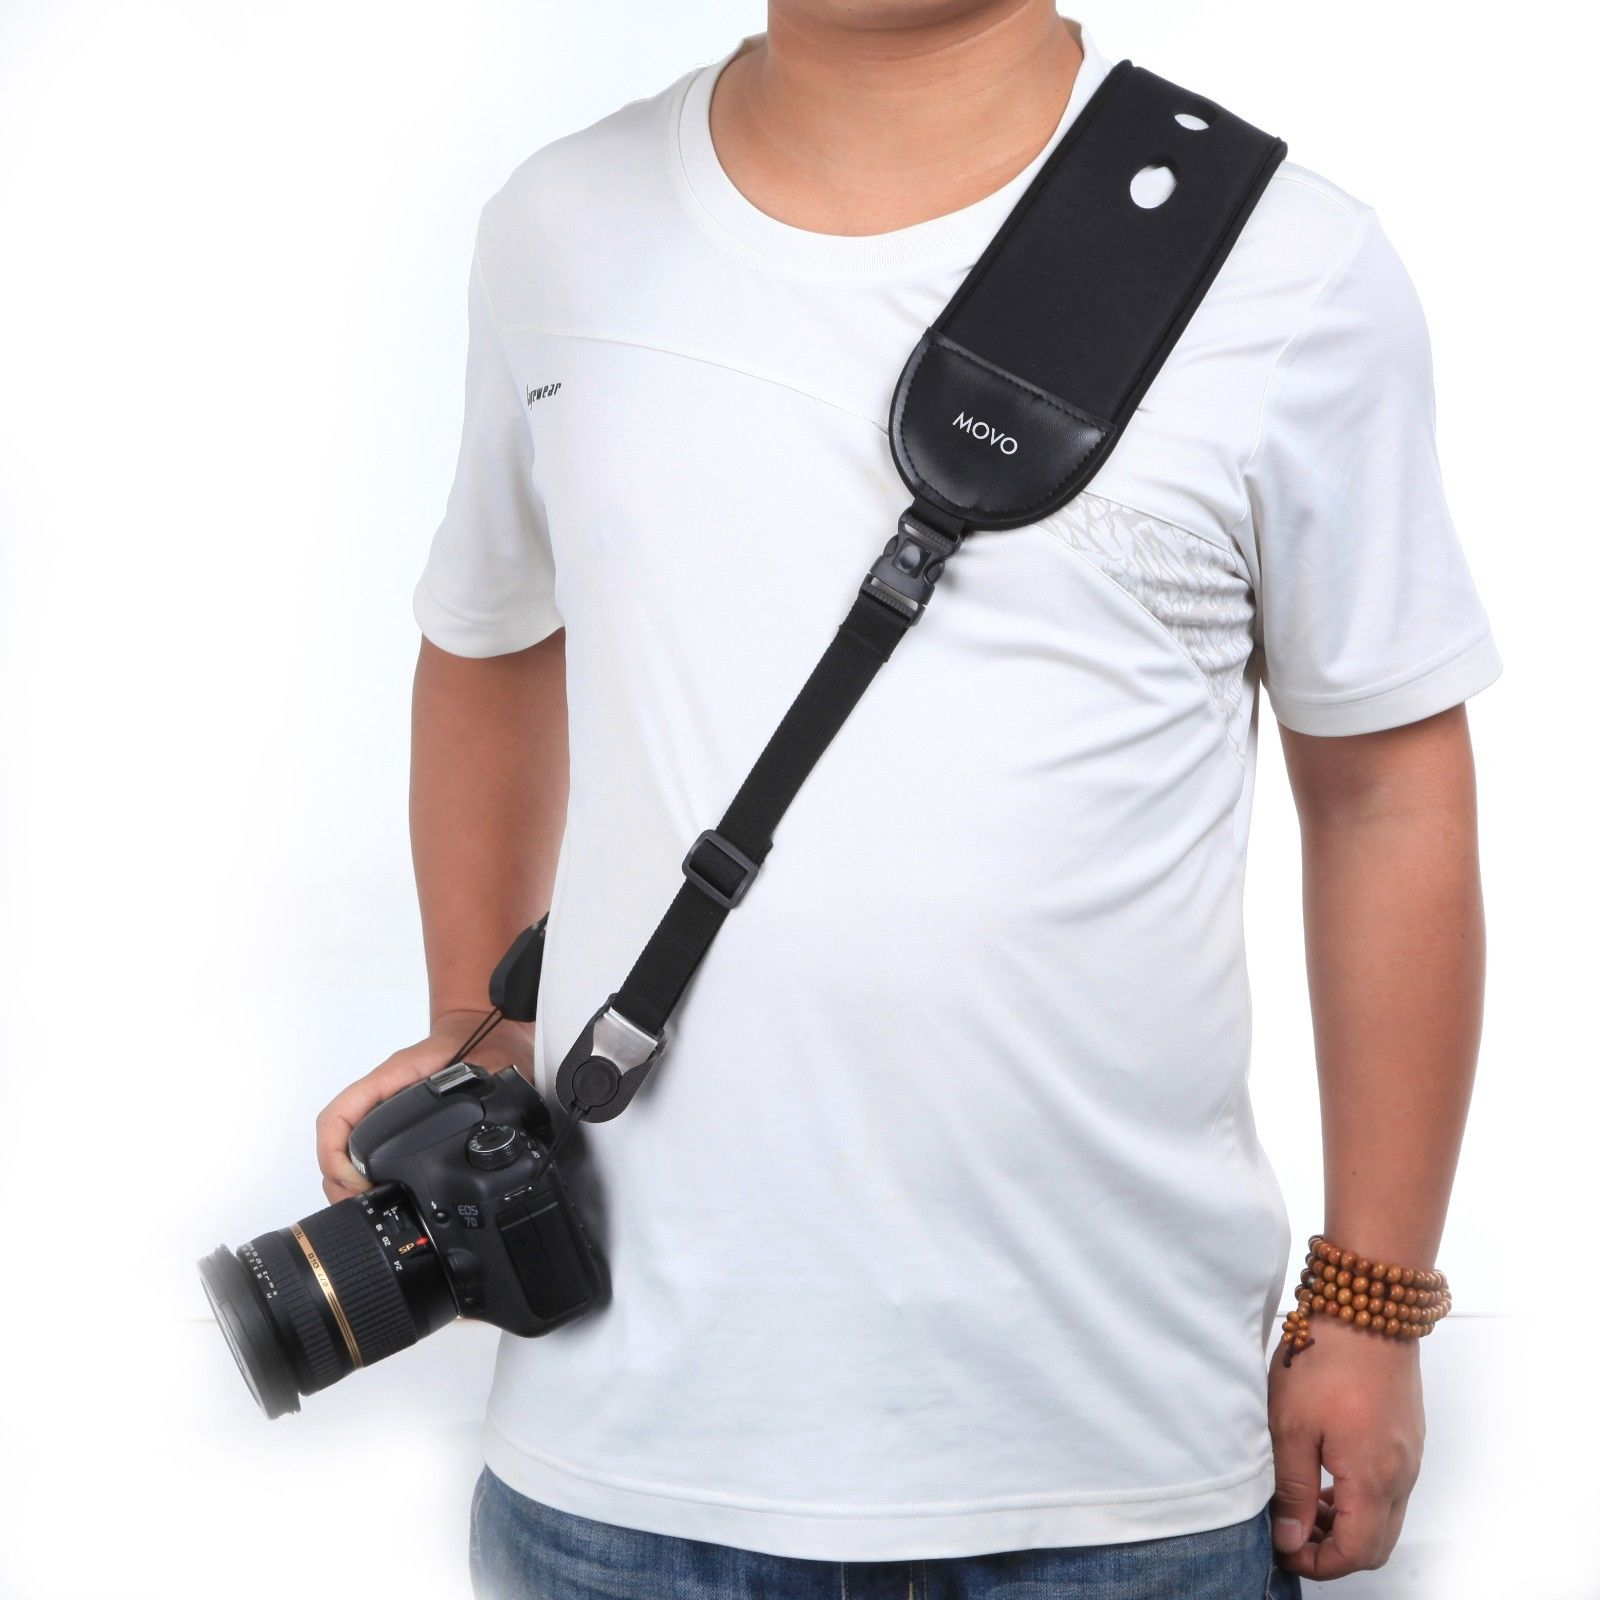 Movo Photo NS-9 Shock-Absorbing Camera Neck Sling Strap / Wrist Strap Combo System with Quick Release Discs